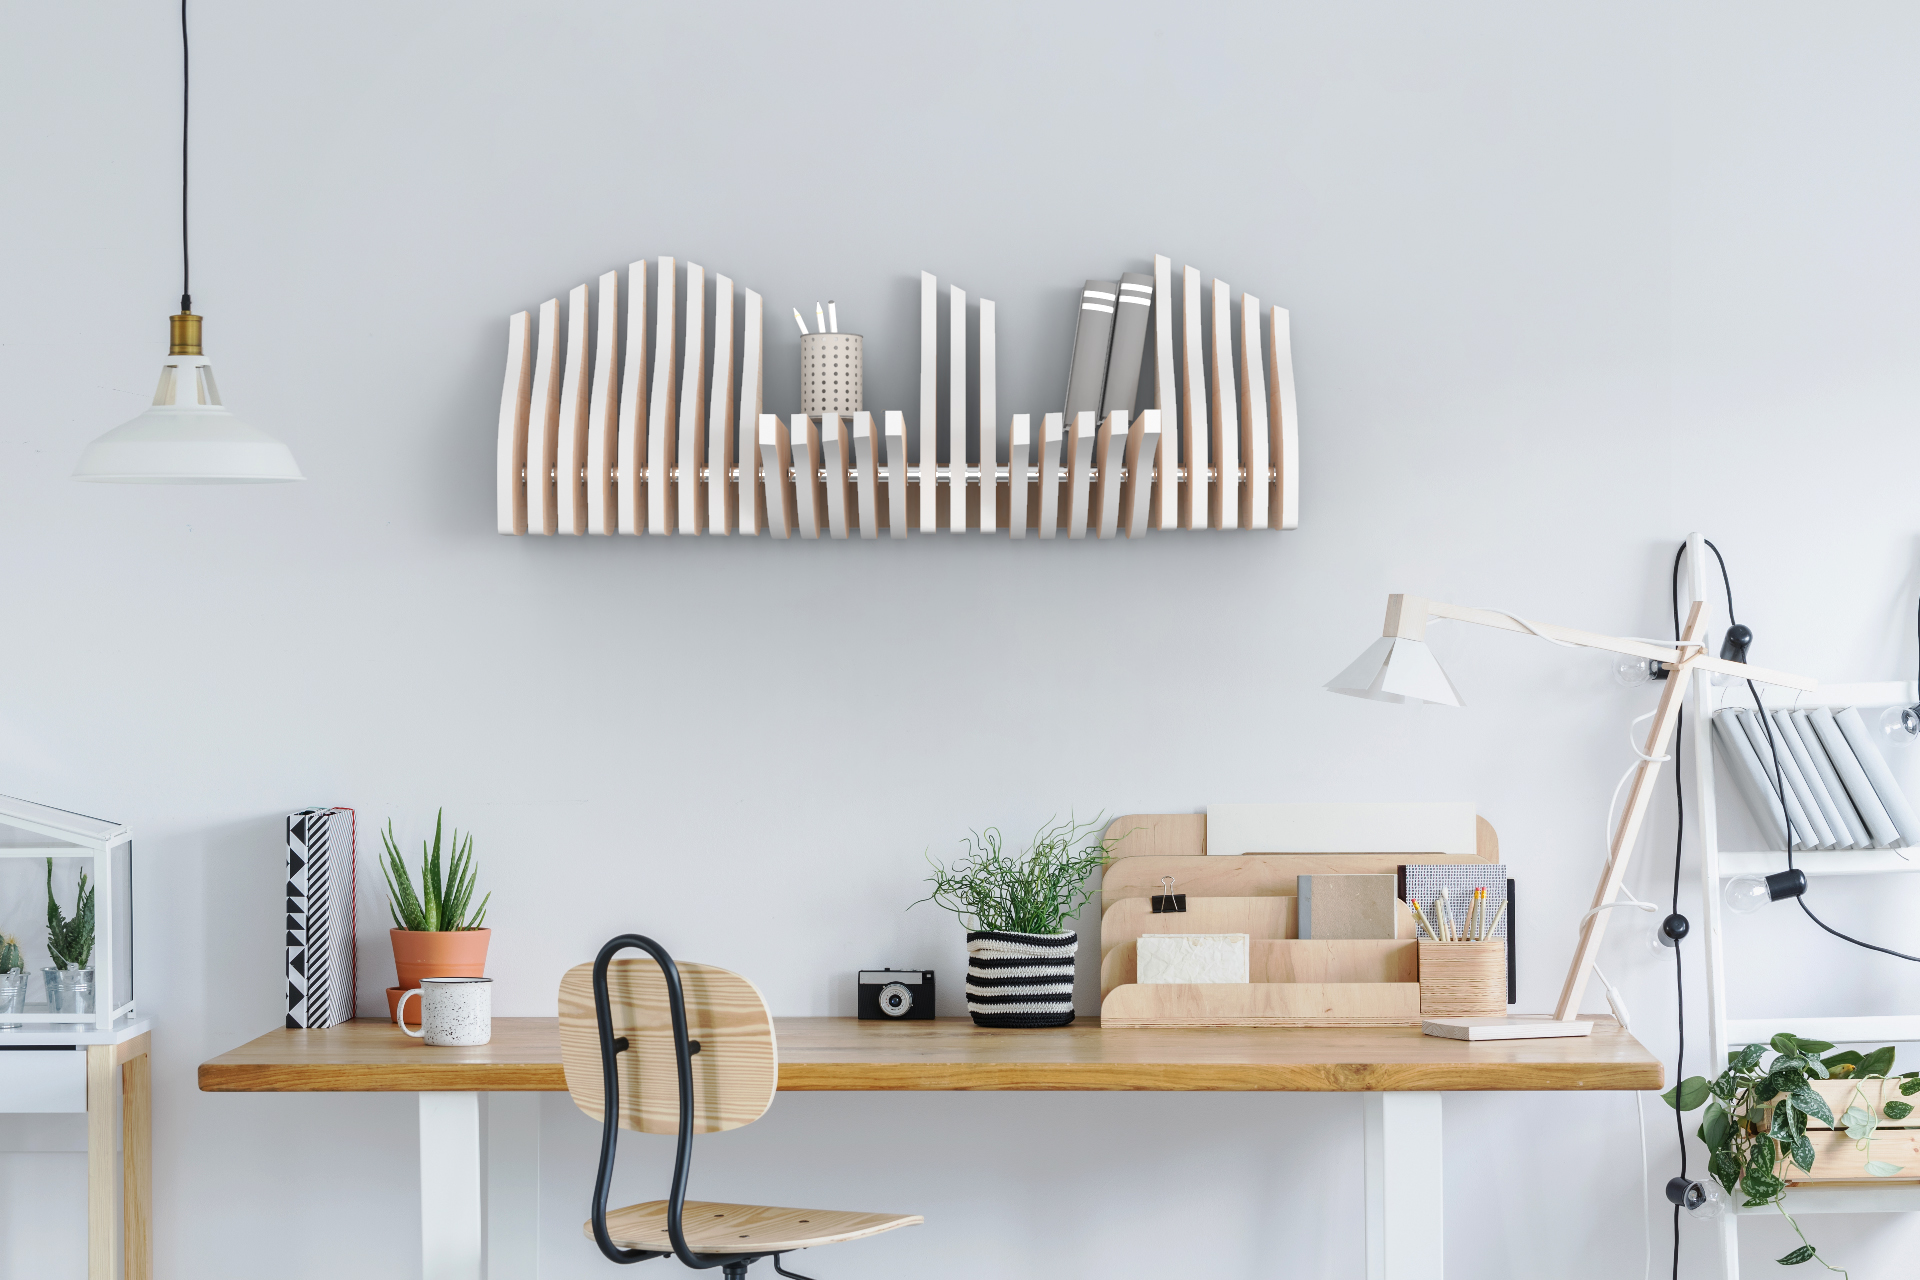 Köllen Bookshelf is a nordic furniture design created from the repetition of adaptable pieces in matter of size and shape of the objects on it.